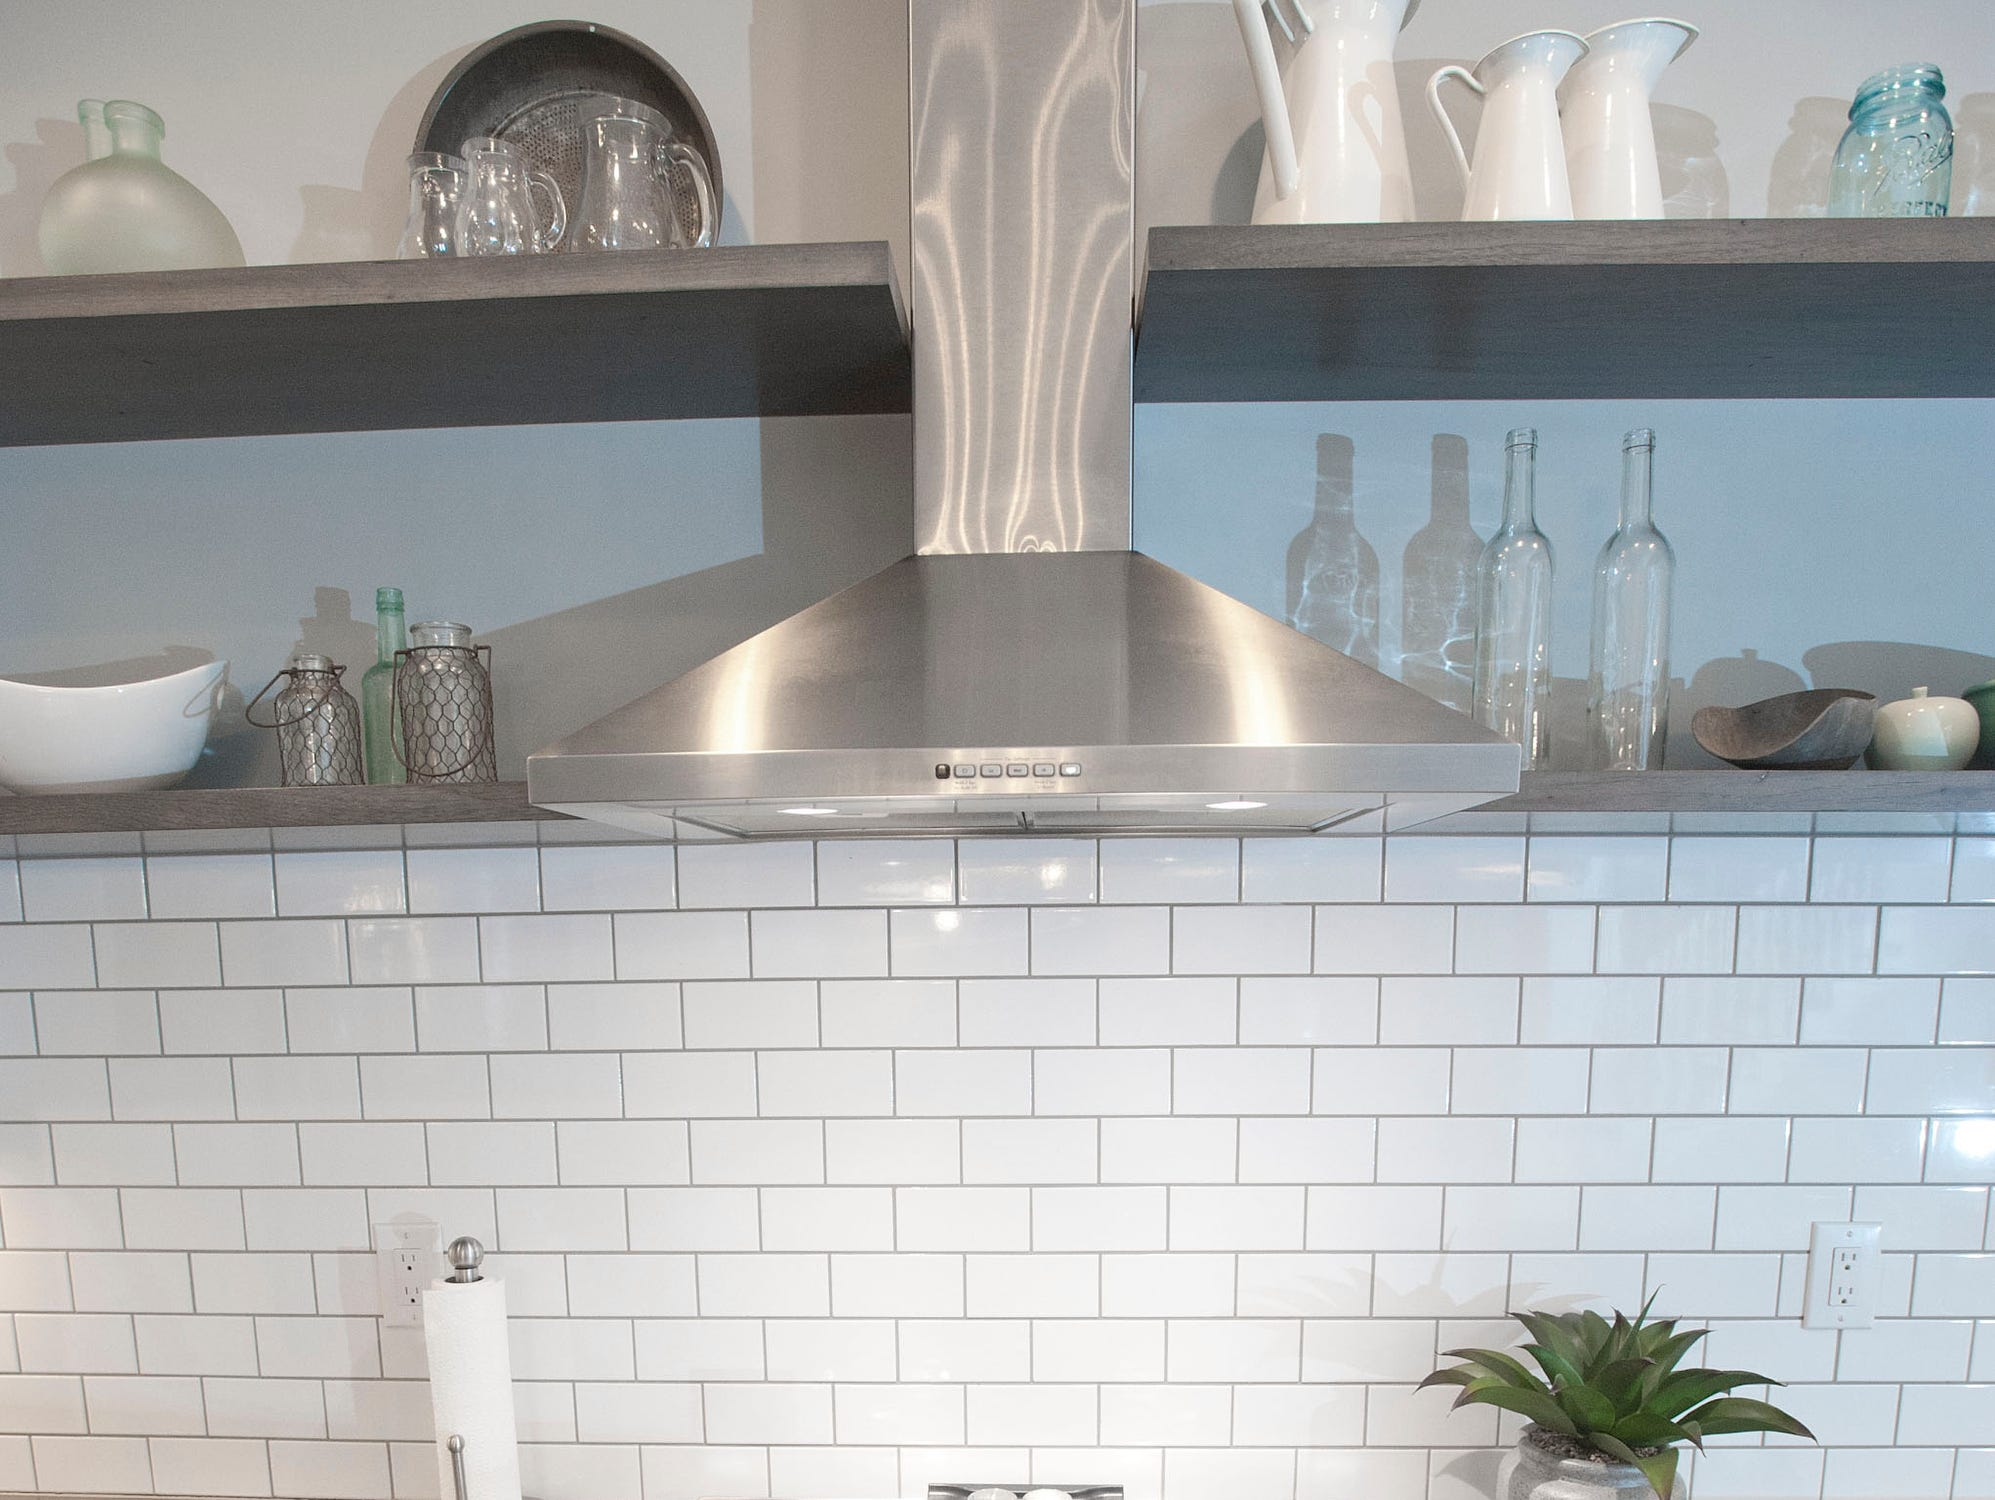 The Hannah kitchen includes a farm sink and floating shelves between the cabinets. The backsplash is subway tile.01 March 2019